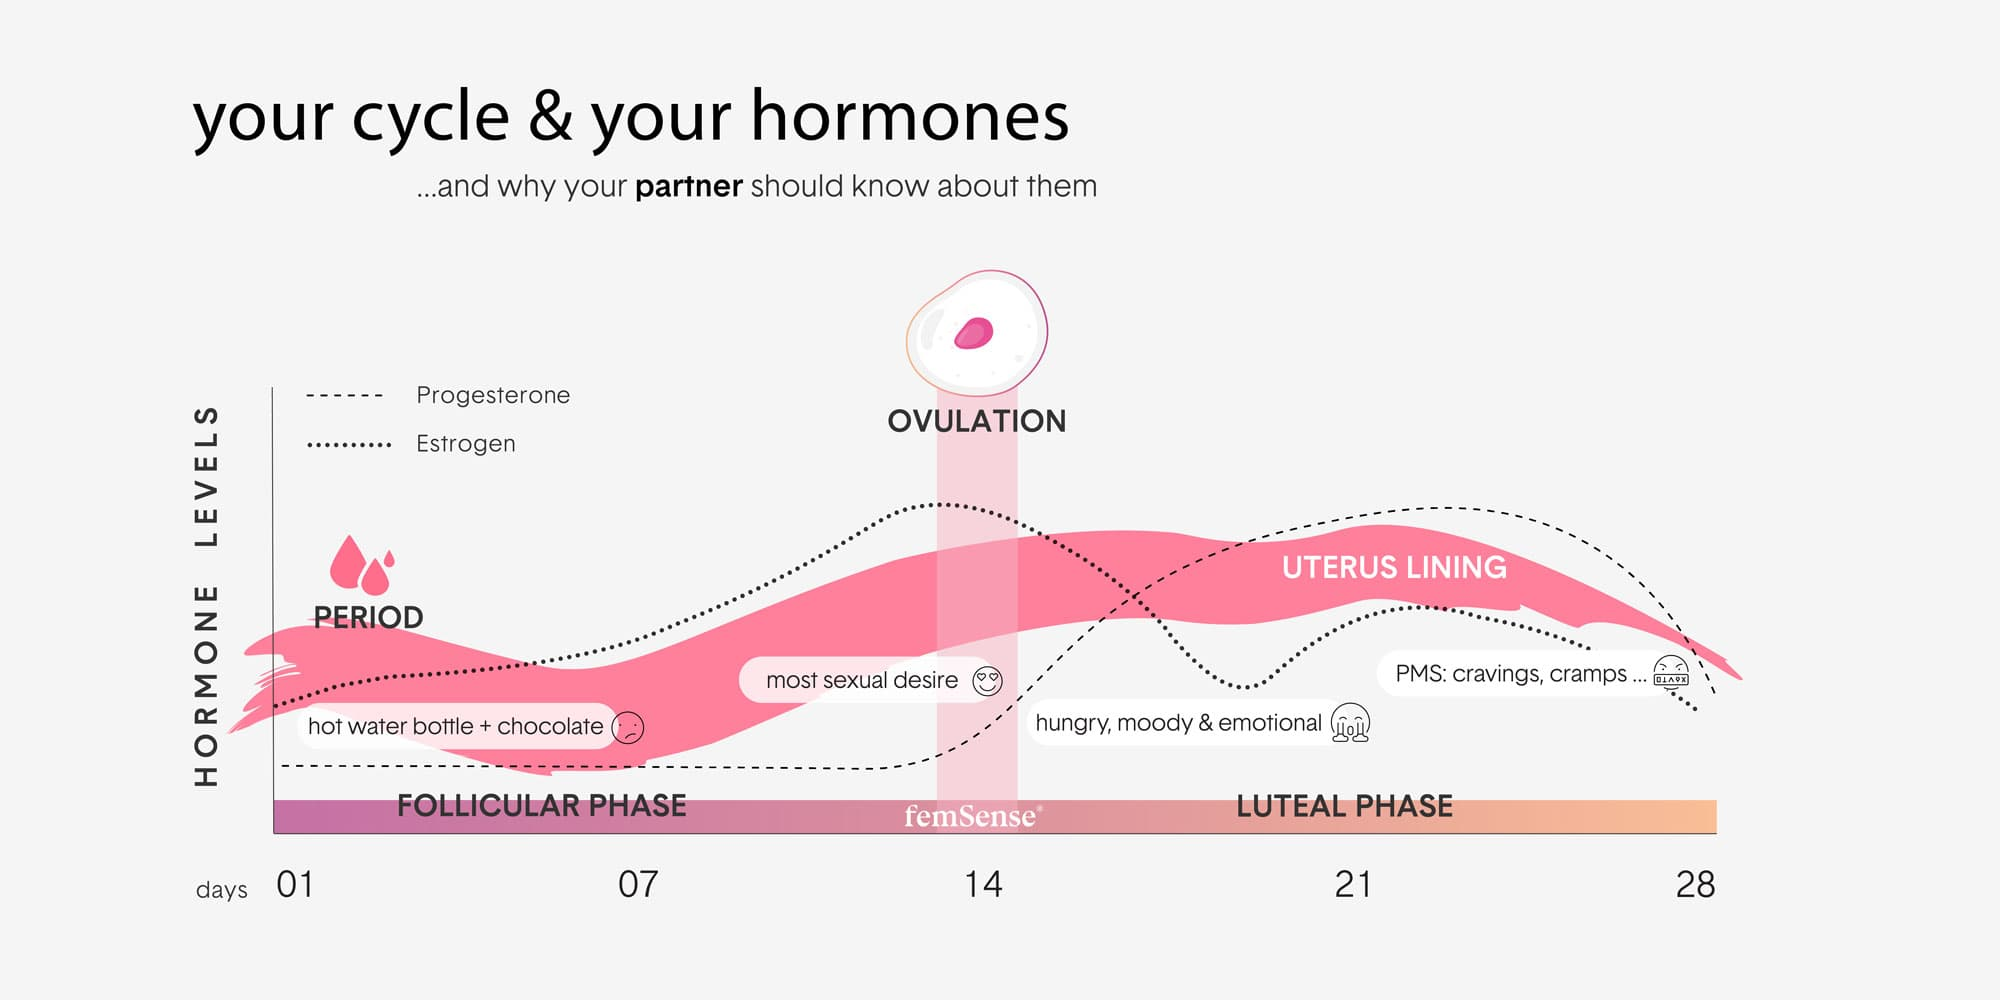 Graph of Hormones in a female cycle plus different moods associated with the different phases